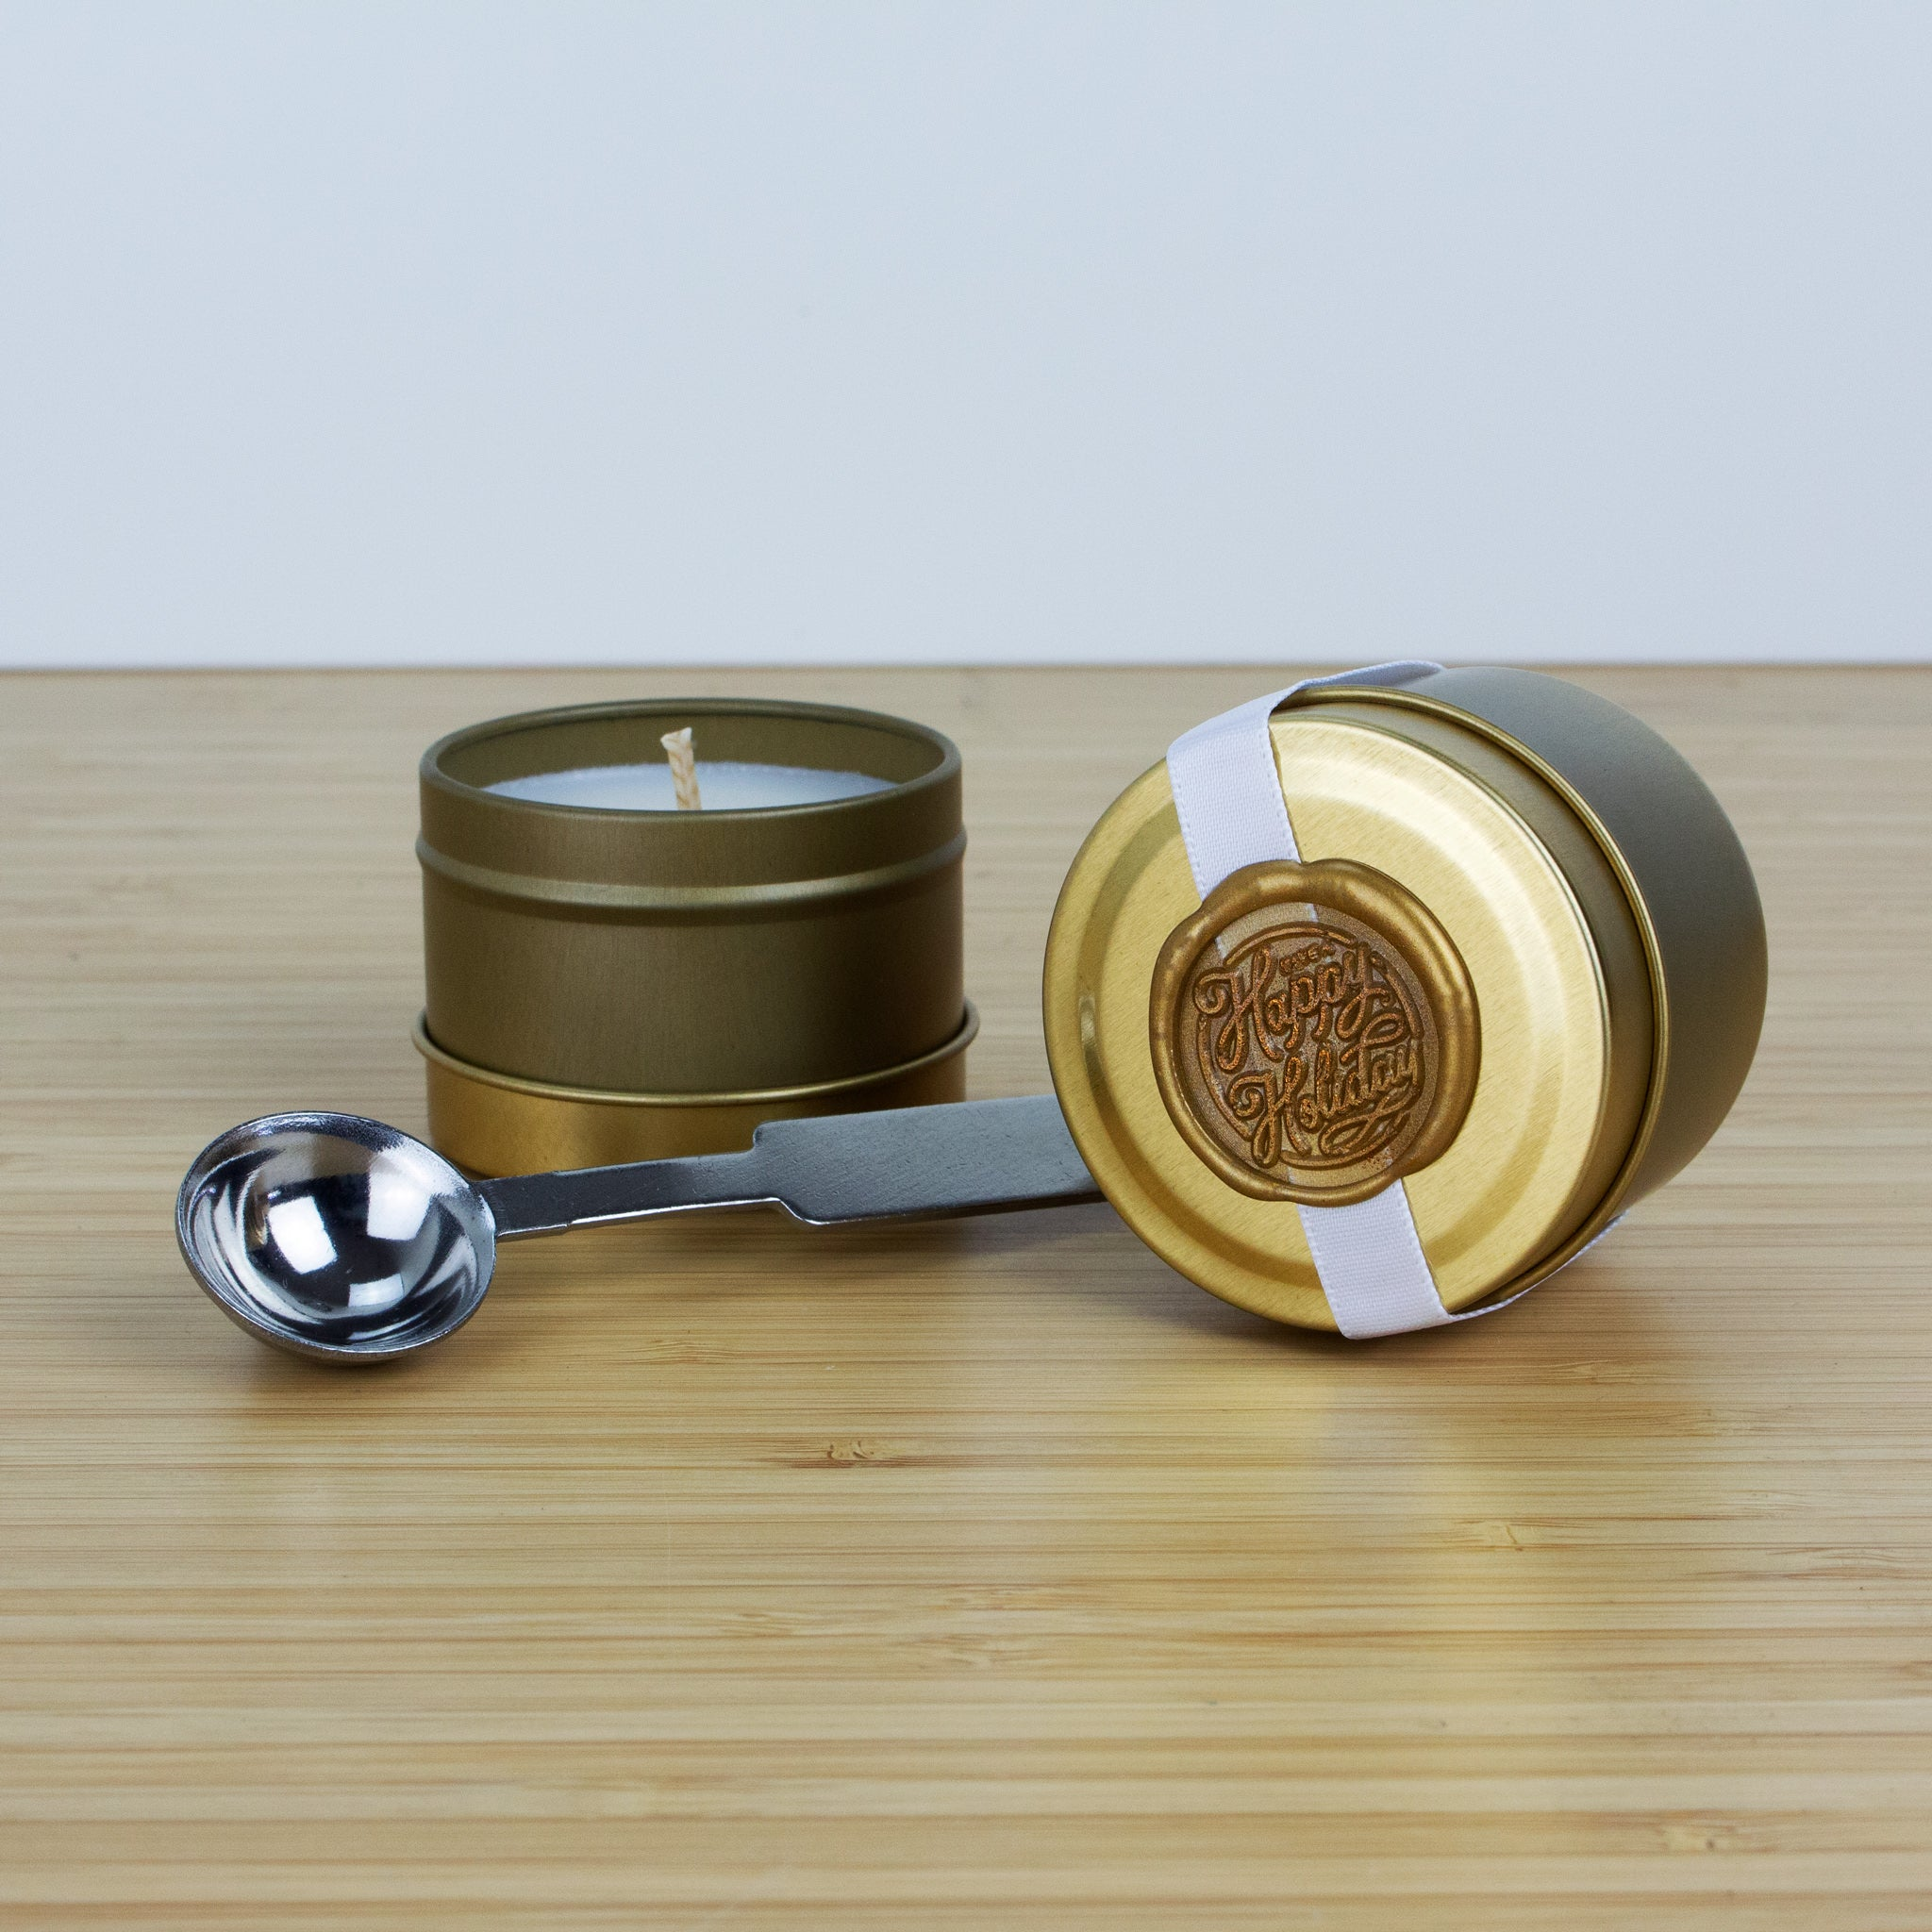 Melting Spoon & Candle - Christmas Gold Edition